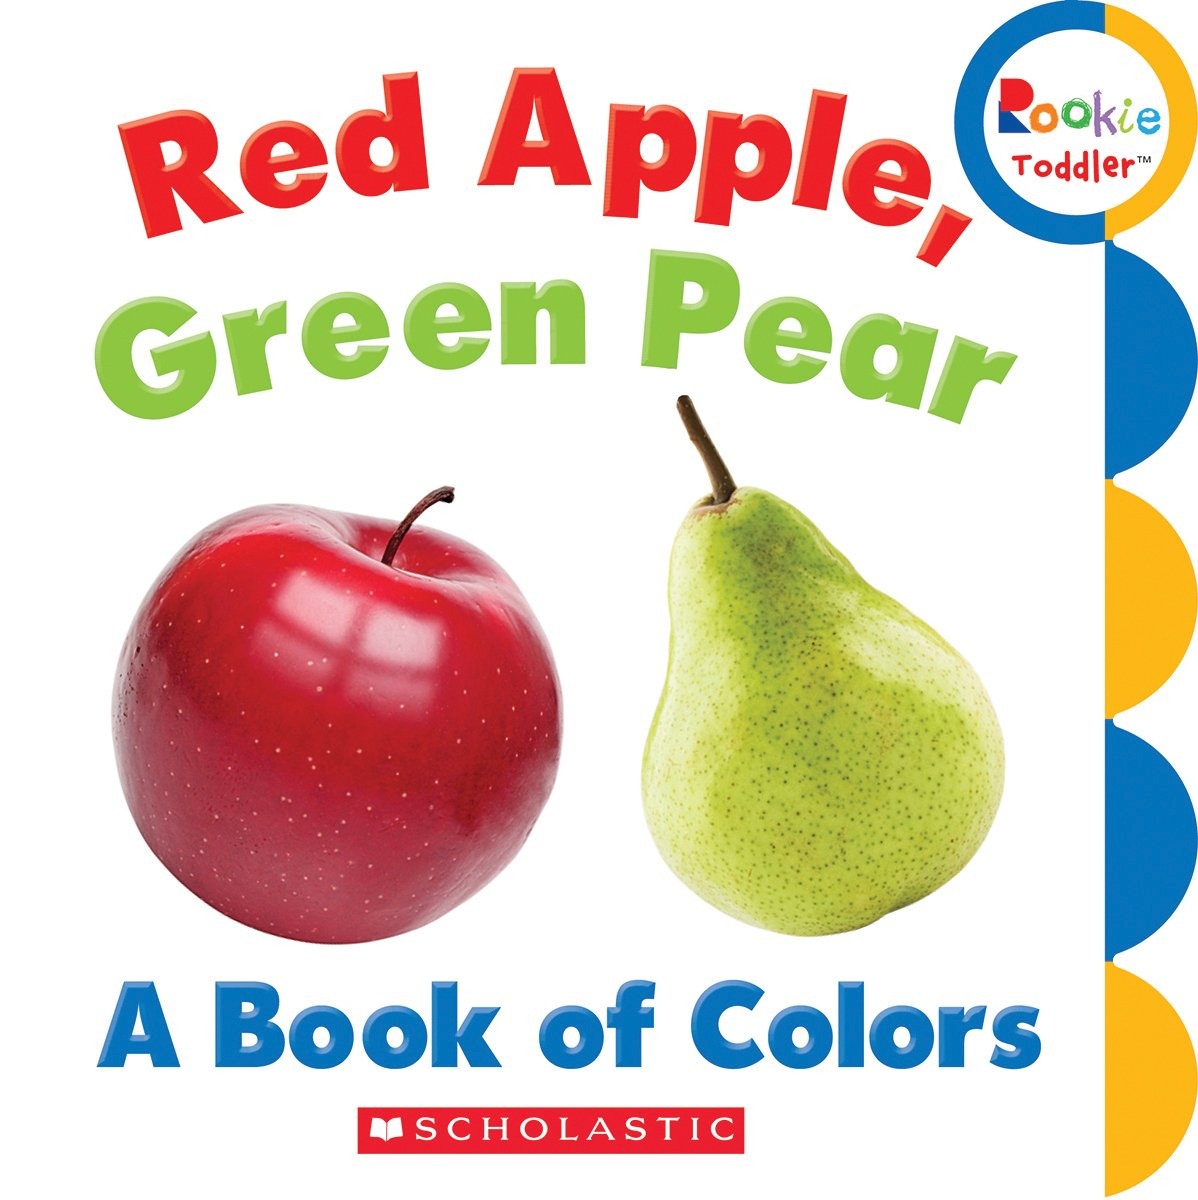 Amazon.com: Red Apple, Green Pear: A Book of Colors (Rookie Toddler ...